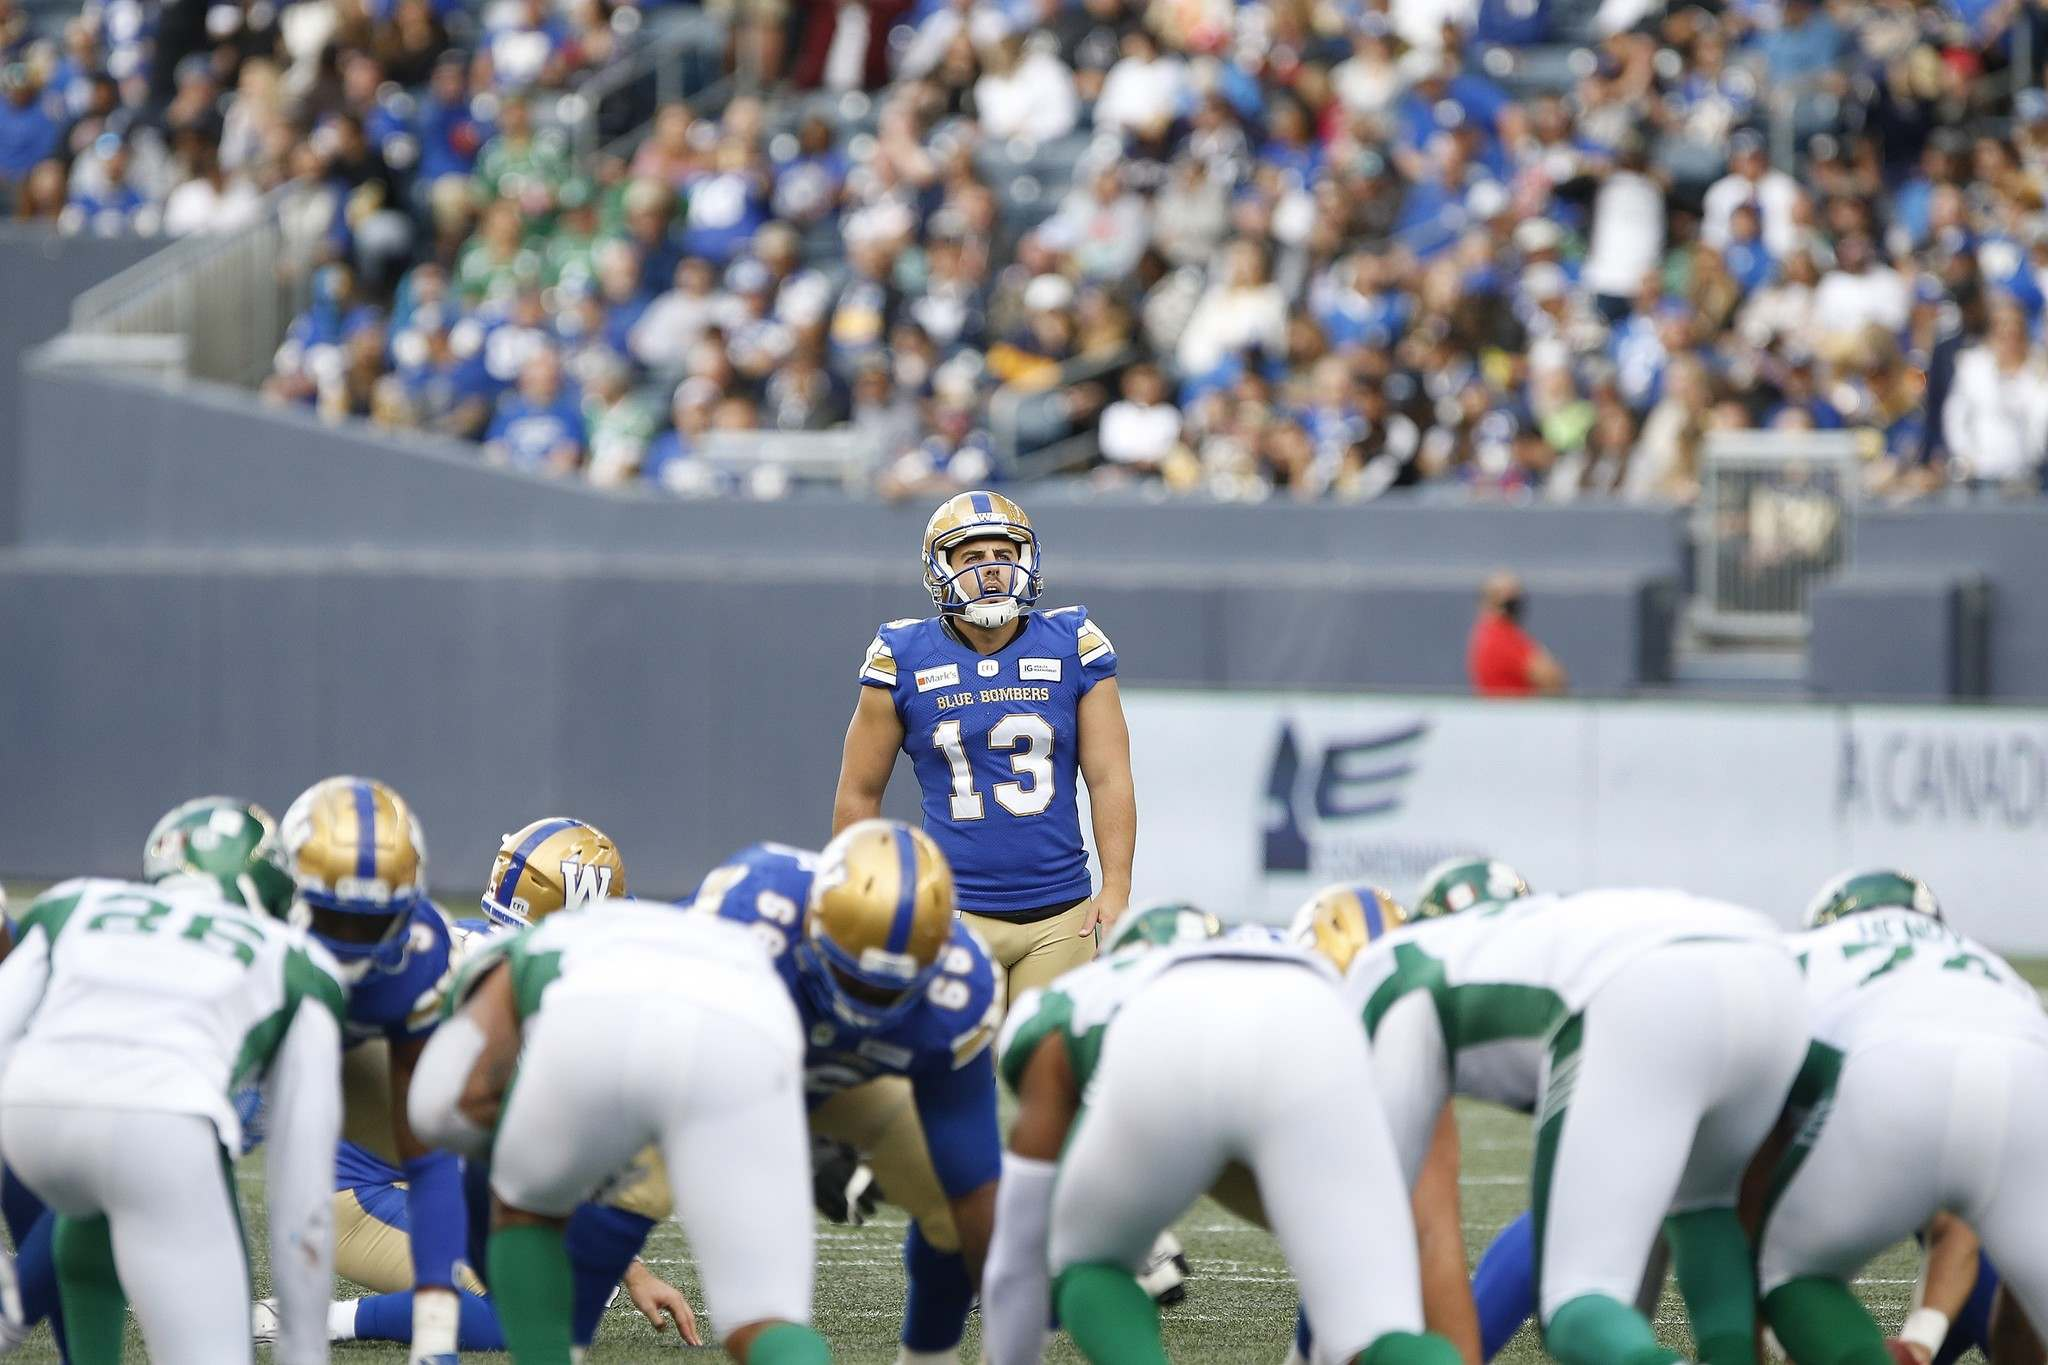 Winnipeg Blue Bombers kicker Marc Liegghio had another rough outing against the Saskatchewan Roughriders. (John Woods / The Canadian Press files)</p>